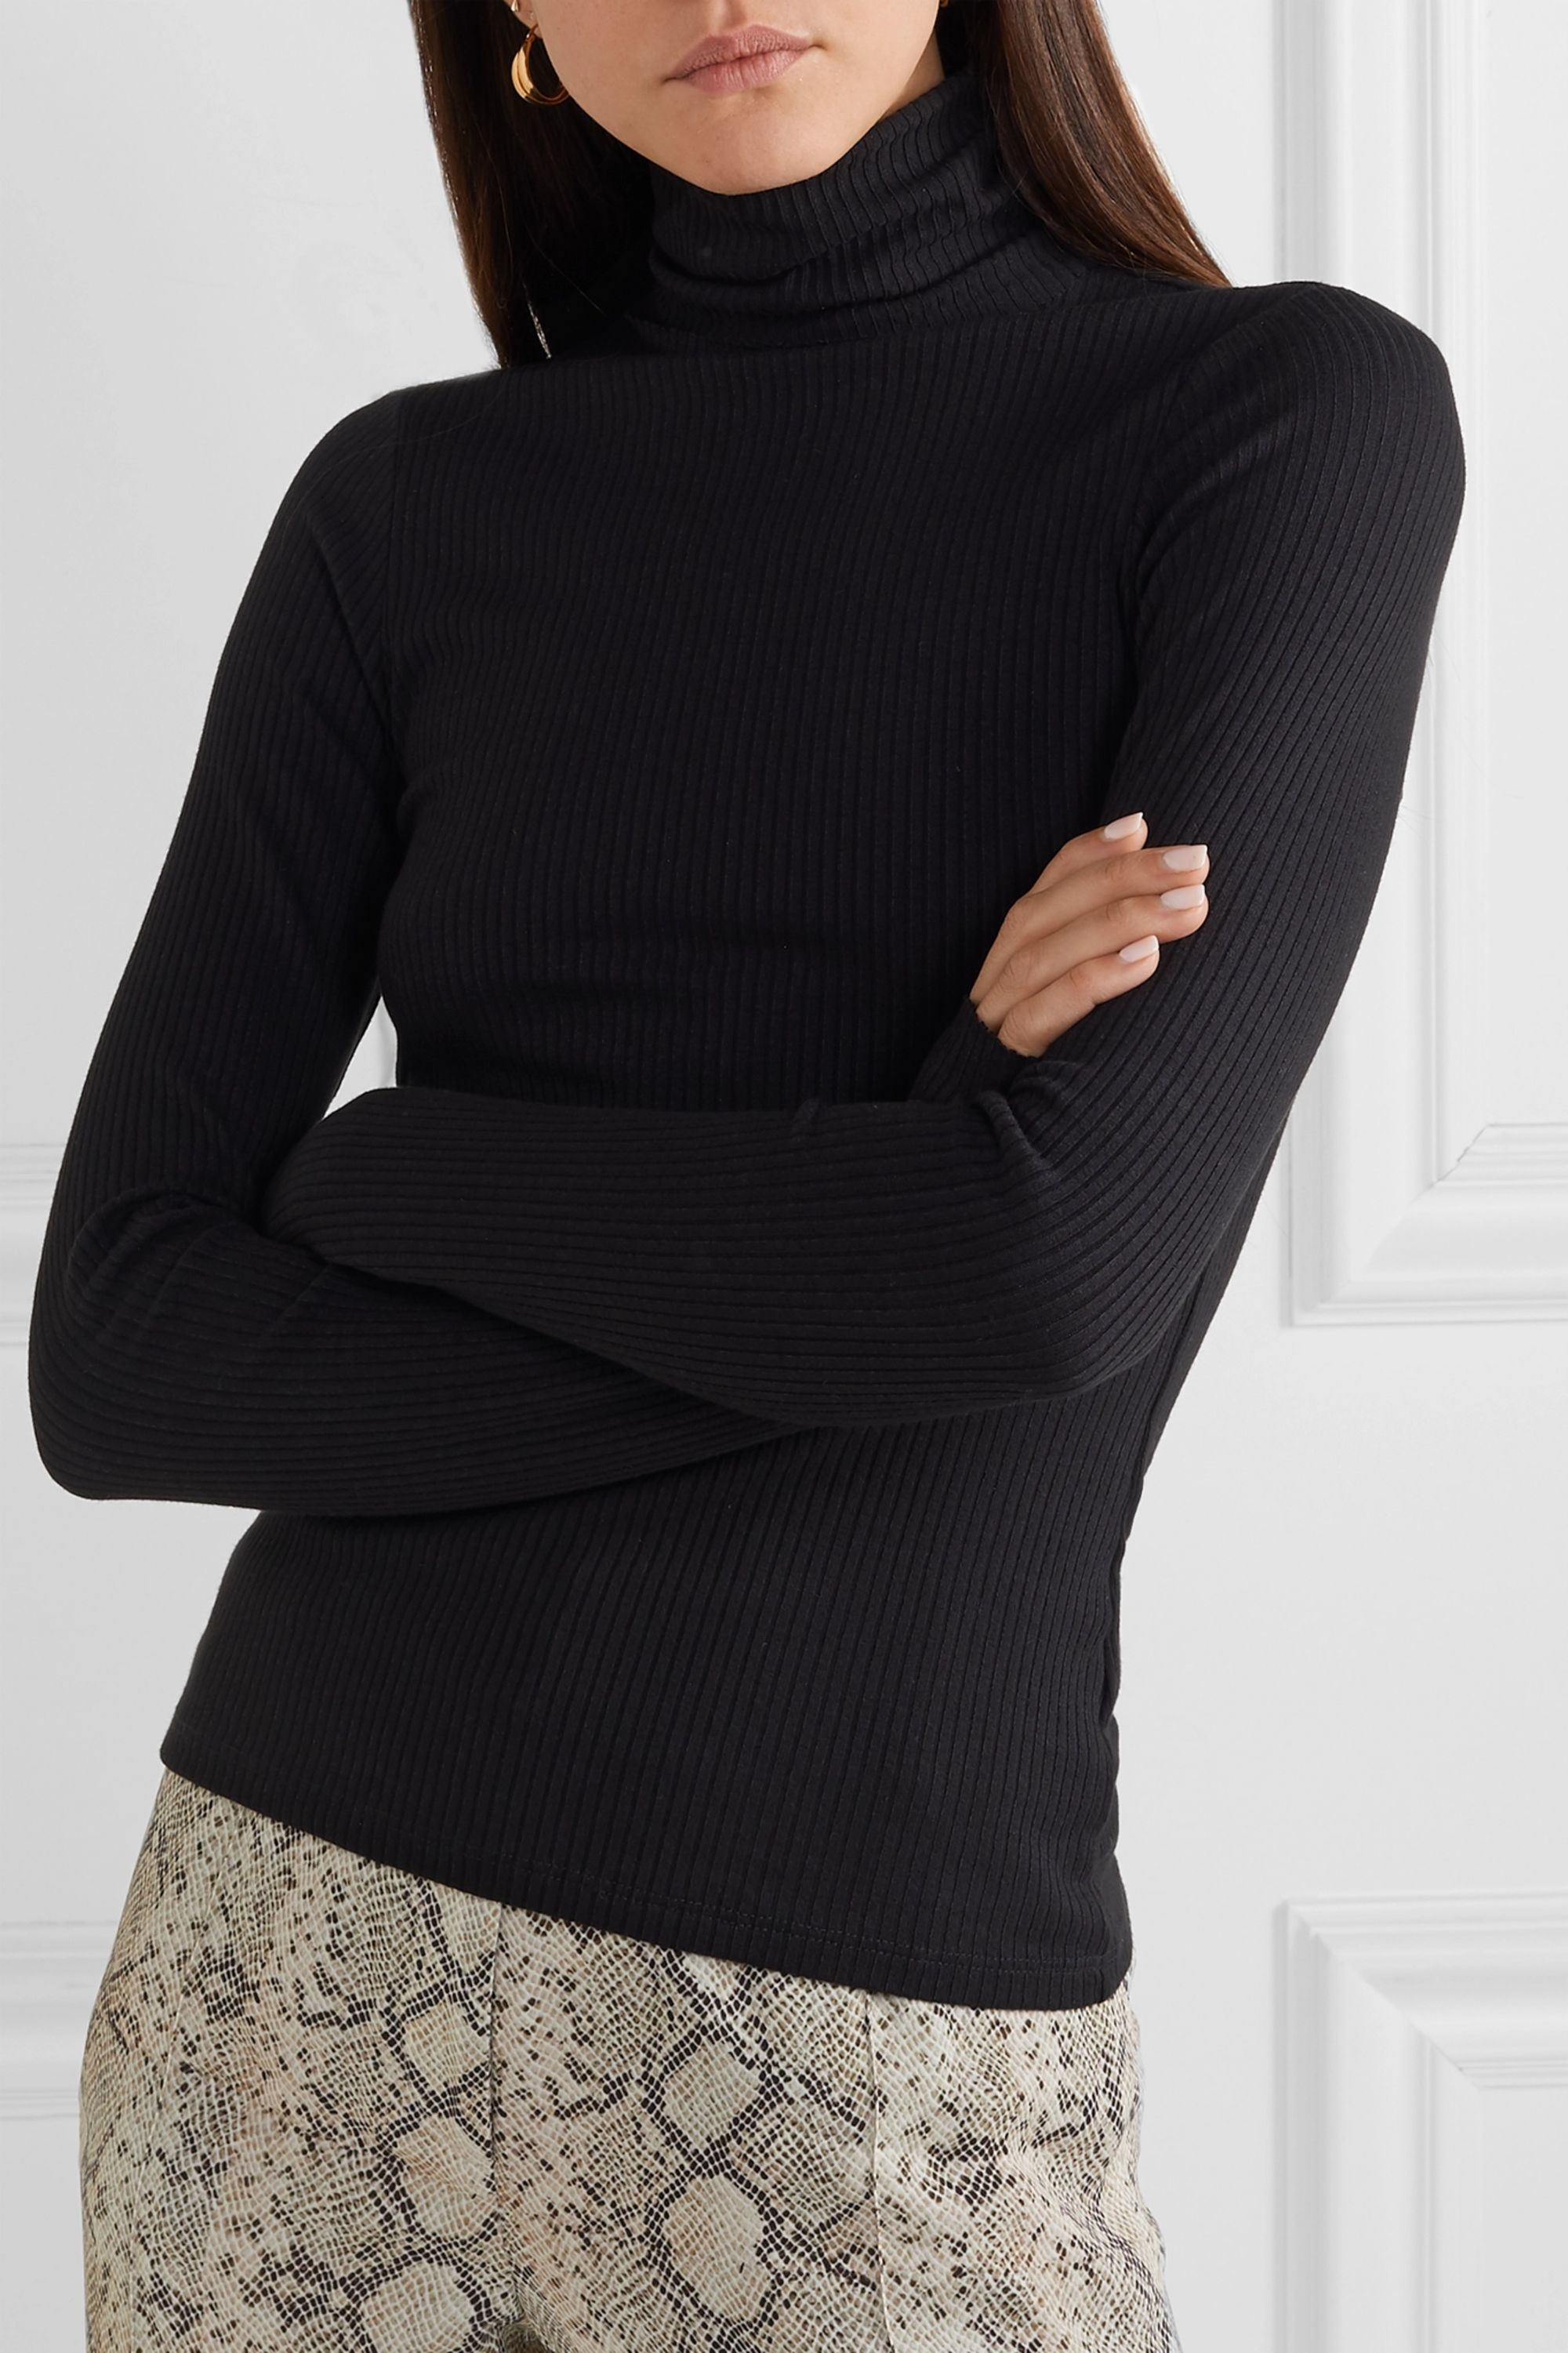 The Range Alloy ribbed stretch-knit turtleneck sweater